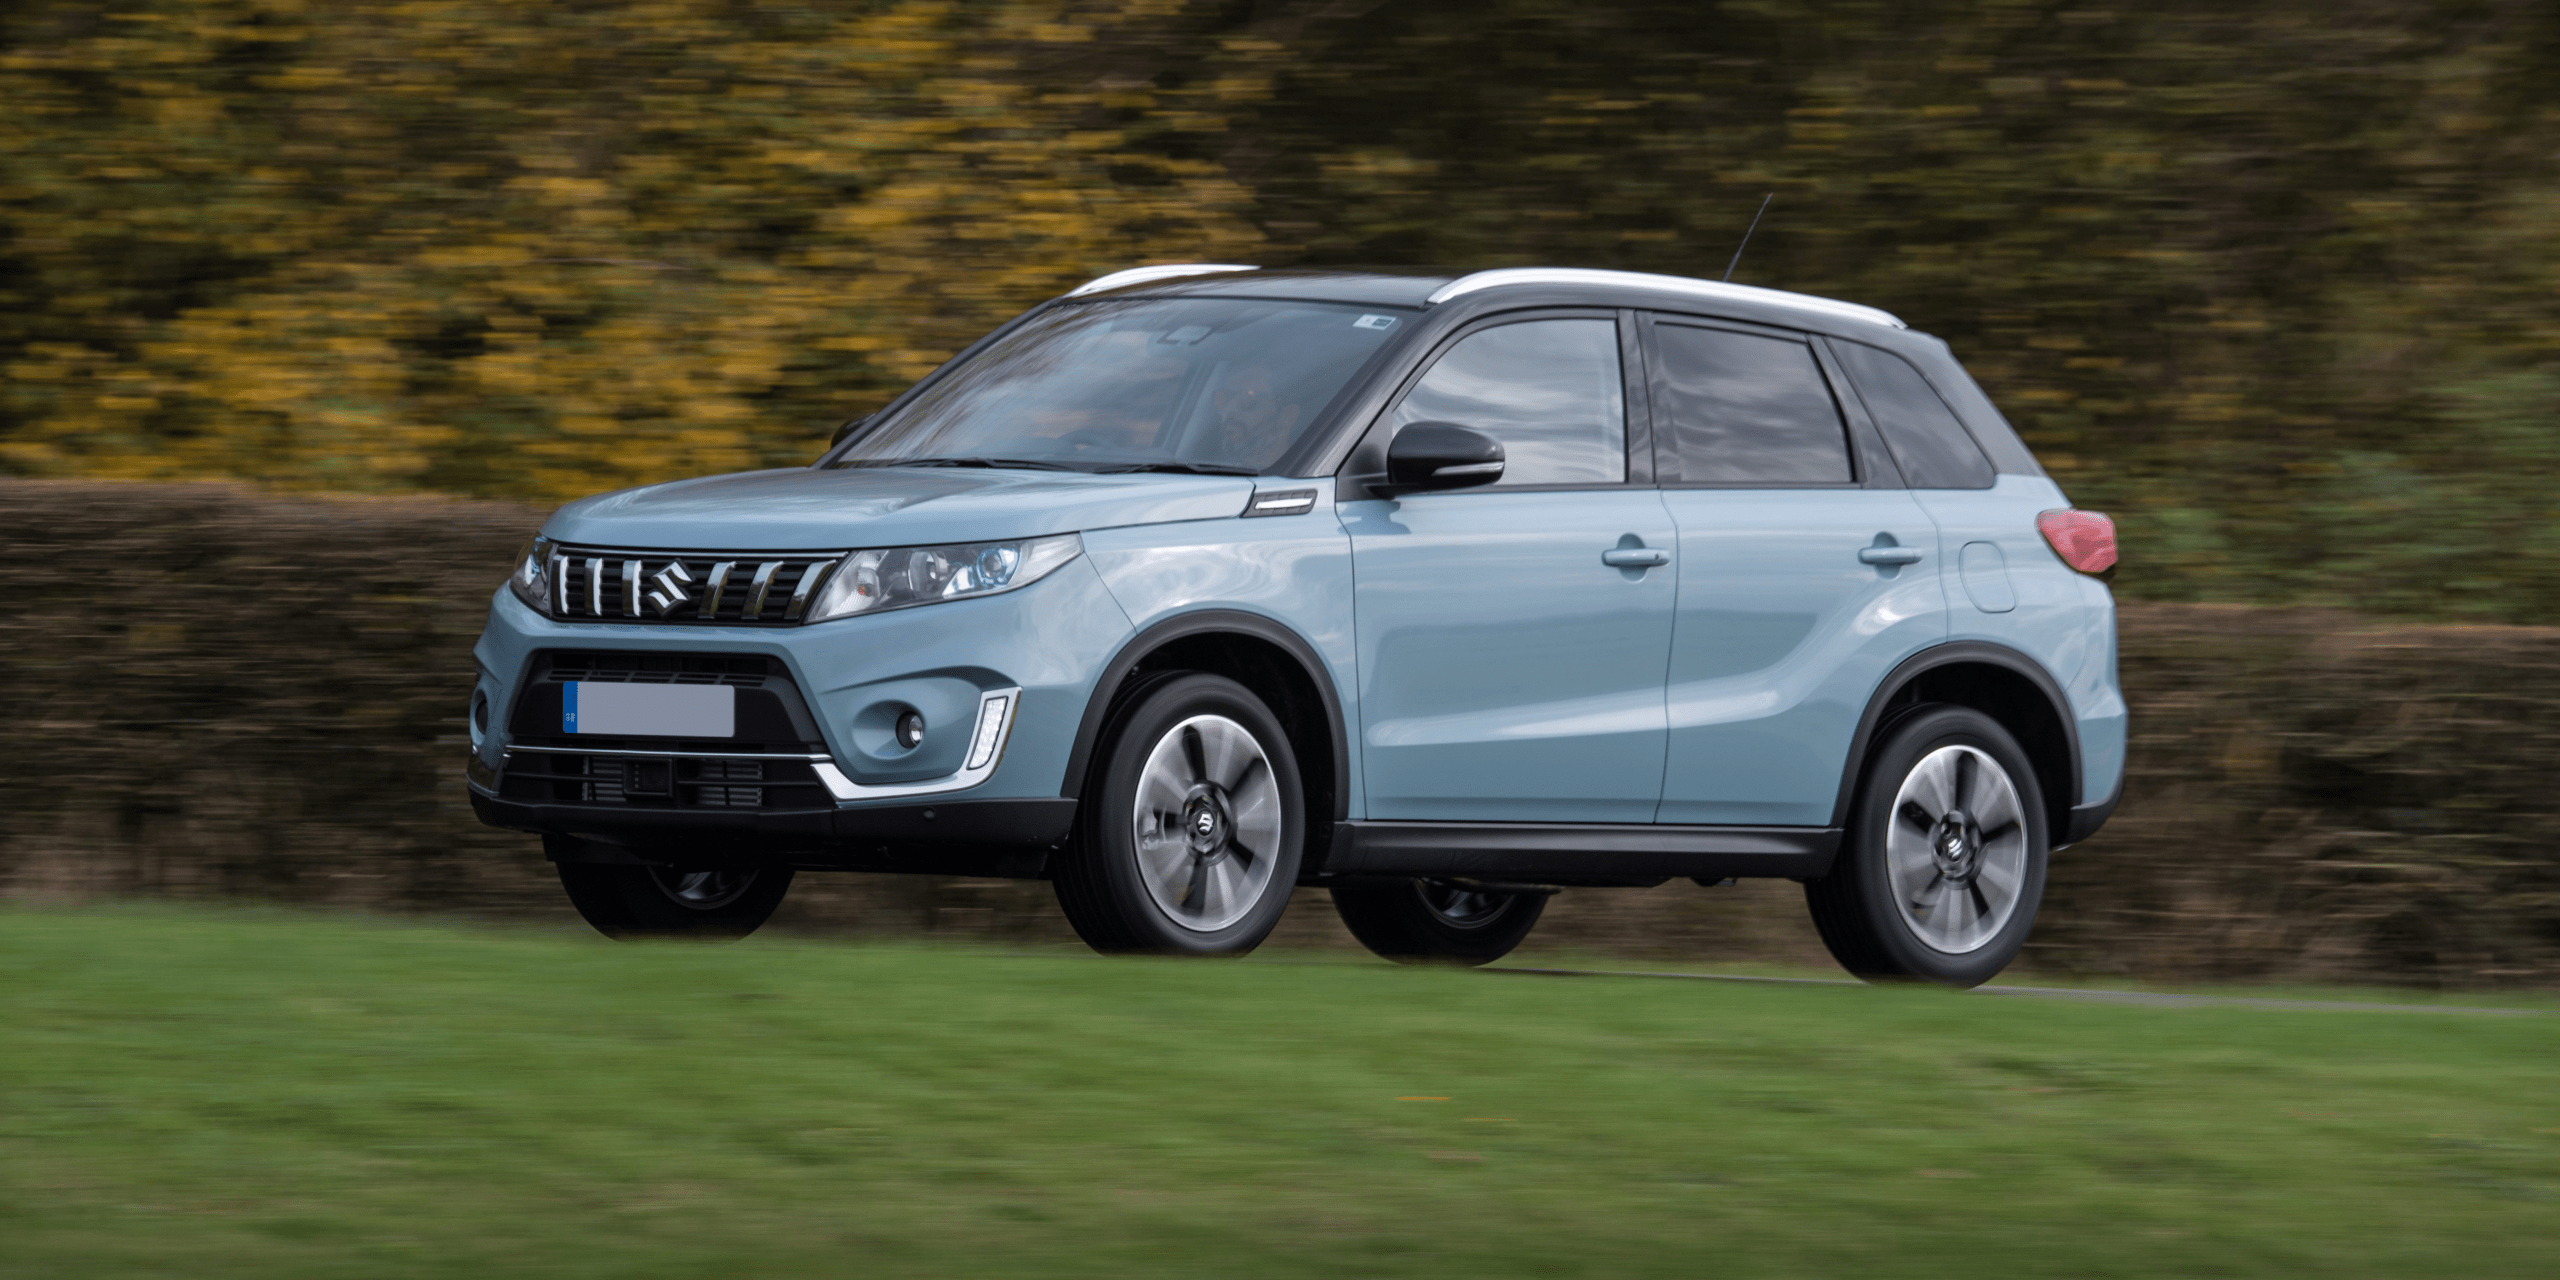 2020 Suzuki Grand Vitara Preview Images